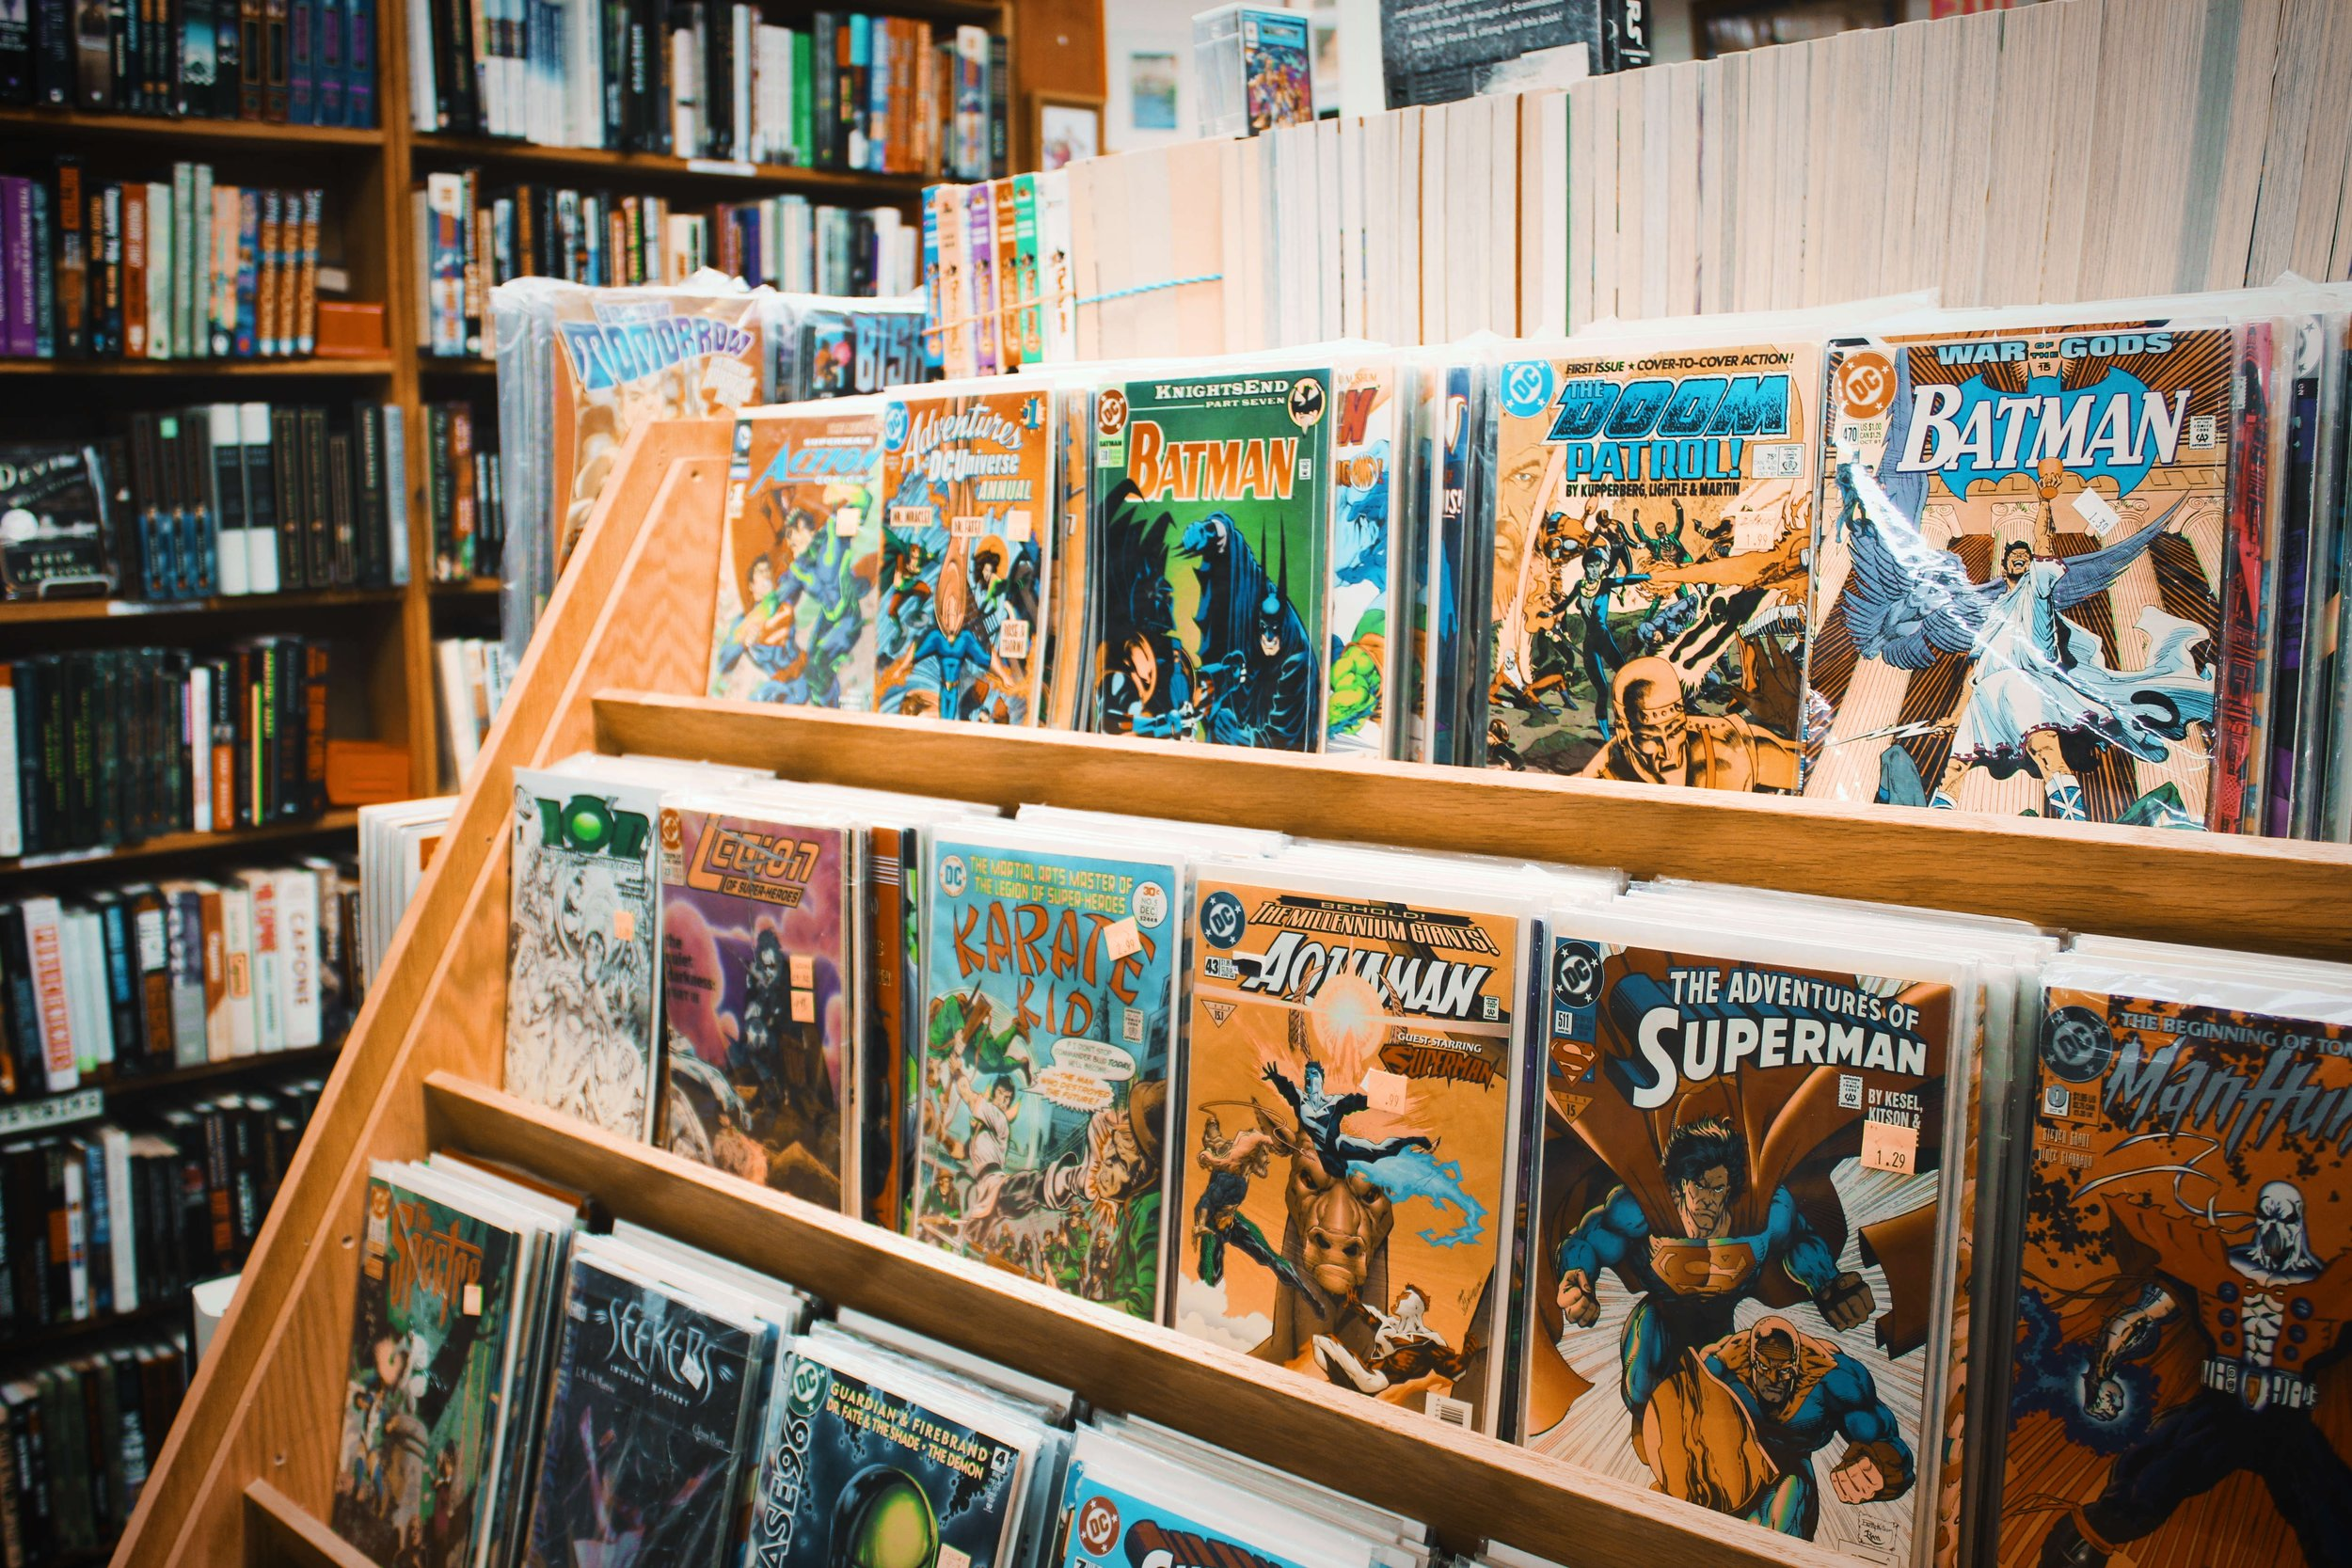 Shelves of comic books in perfect condition